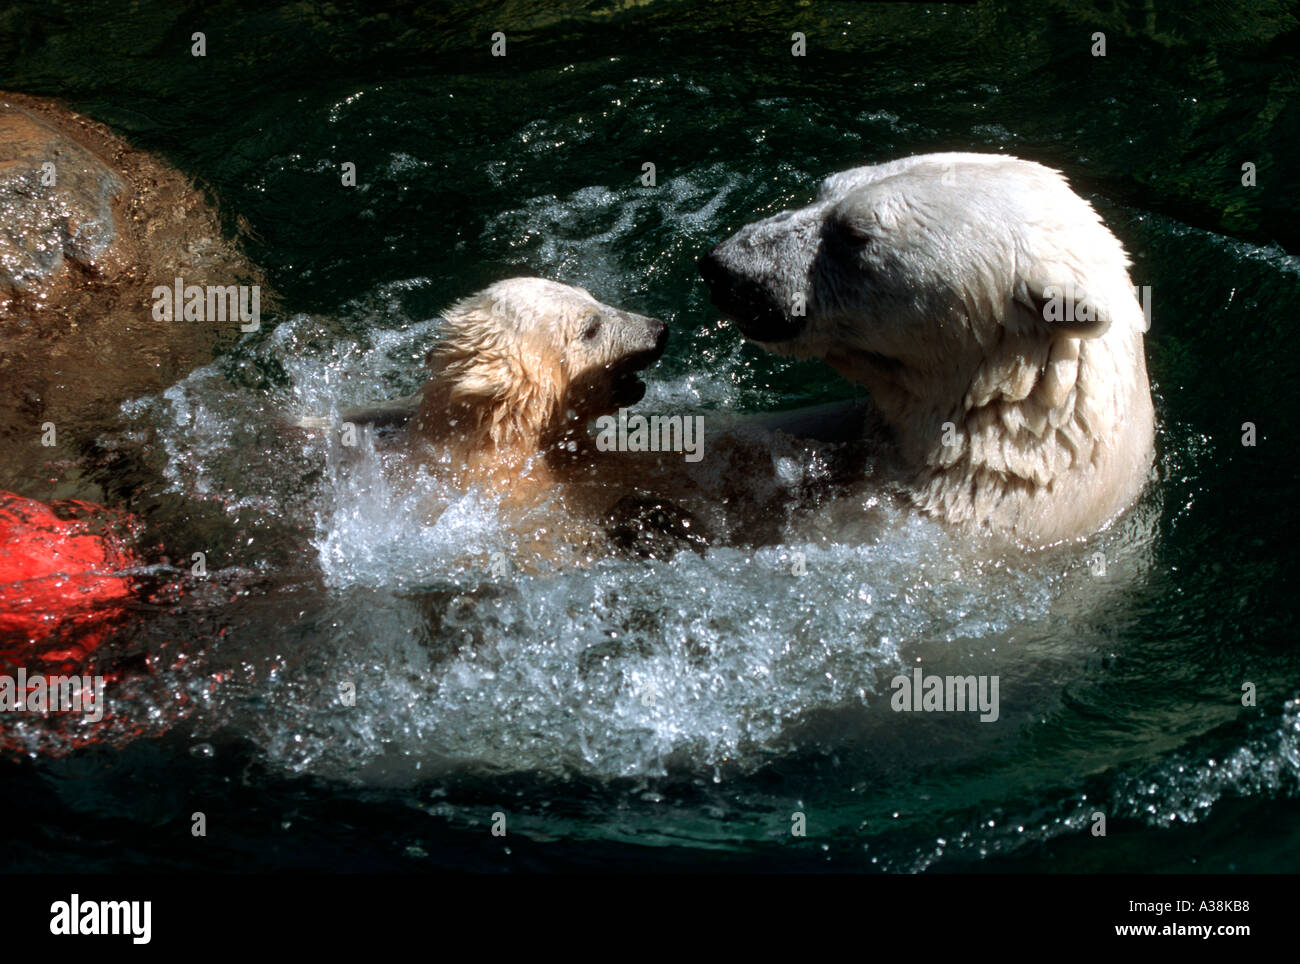 MBP-219 BABY POLAR BEAR PLAYING WITH MOTHER - Stock Image